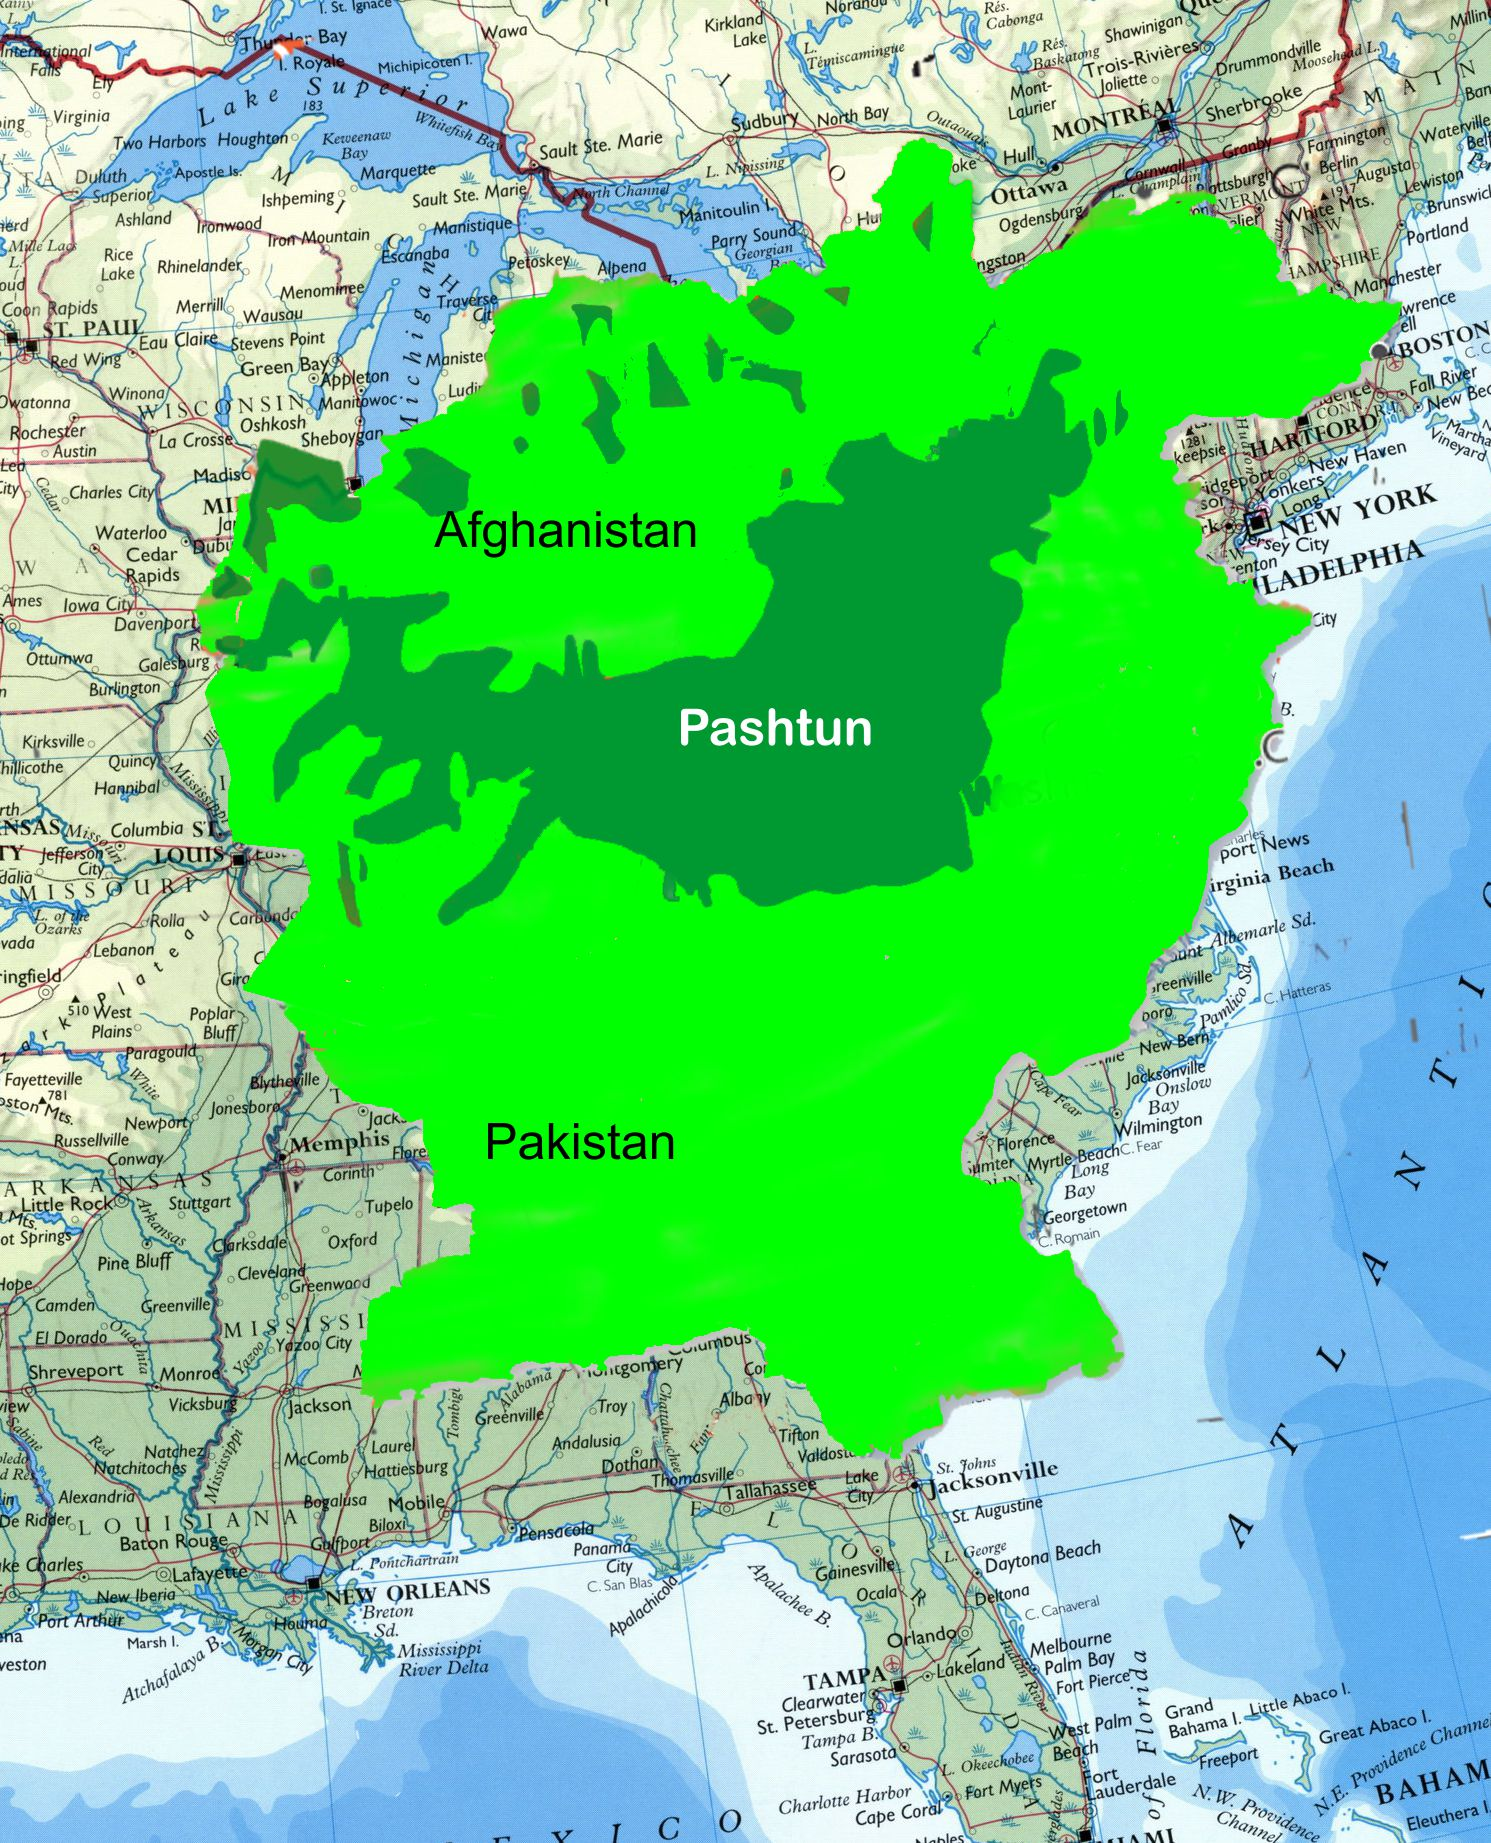 Afghanistan And Pakiston Superimposed On A Map Of The Eastern Us Pashtun Tribal Areas In